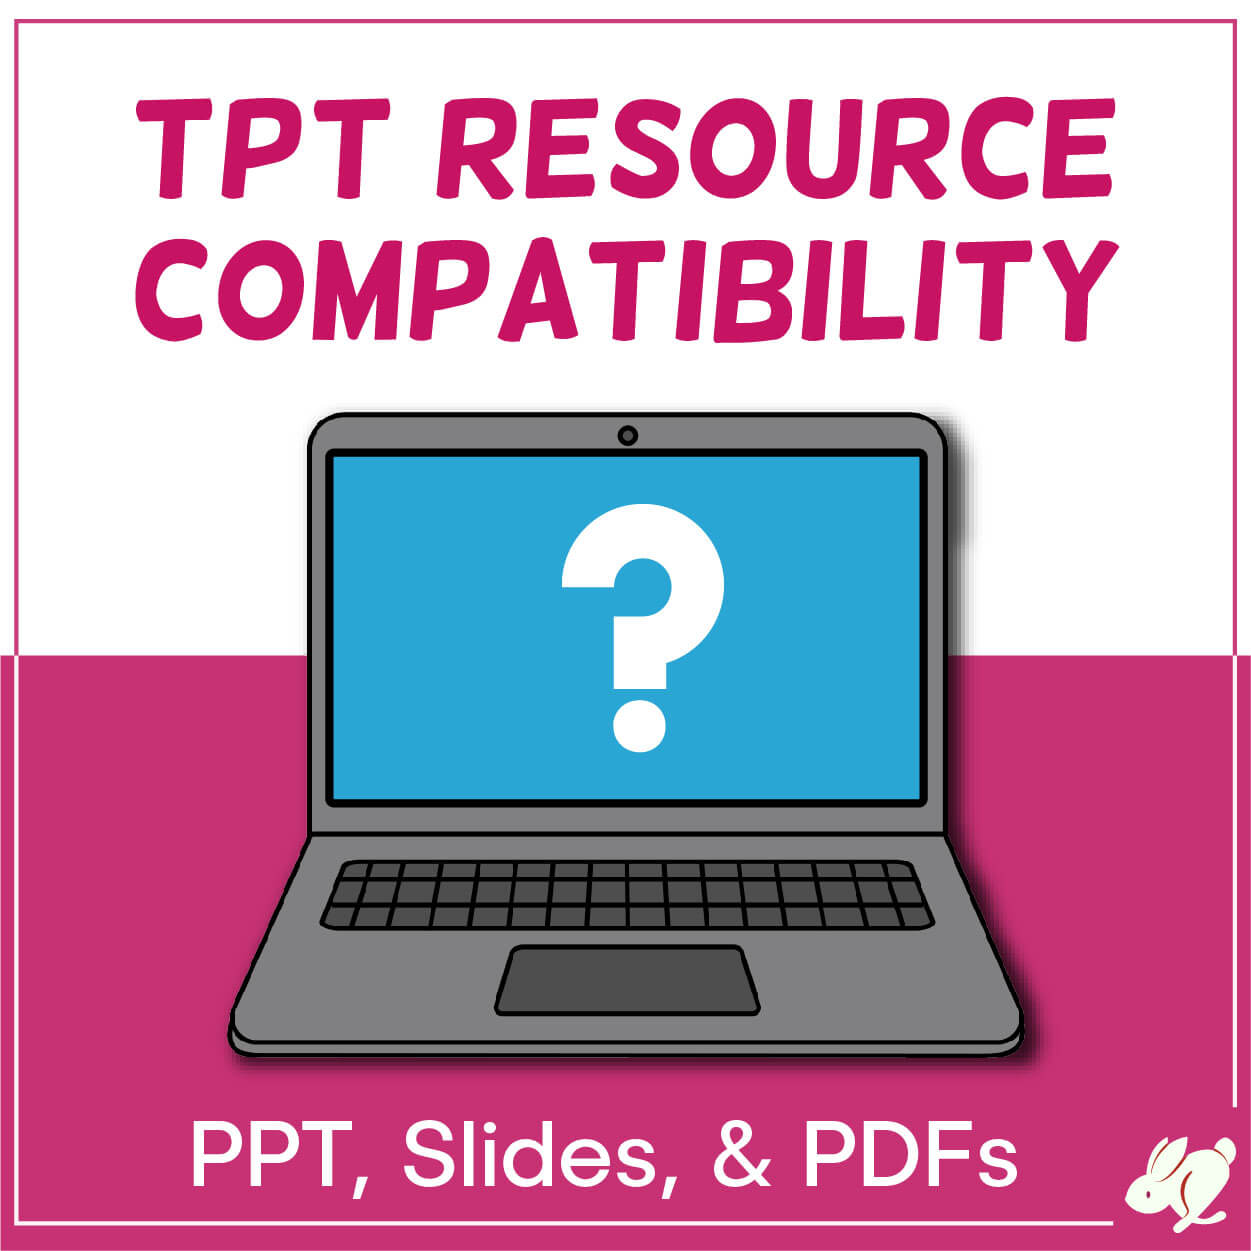 """Why Won't This PowerPoint Work In Slides?"" TpT Resource Cross-Compatibility"